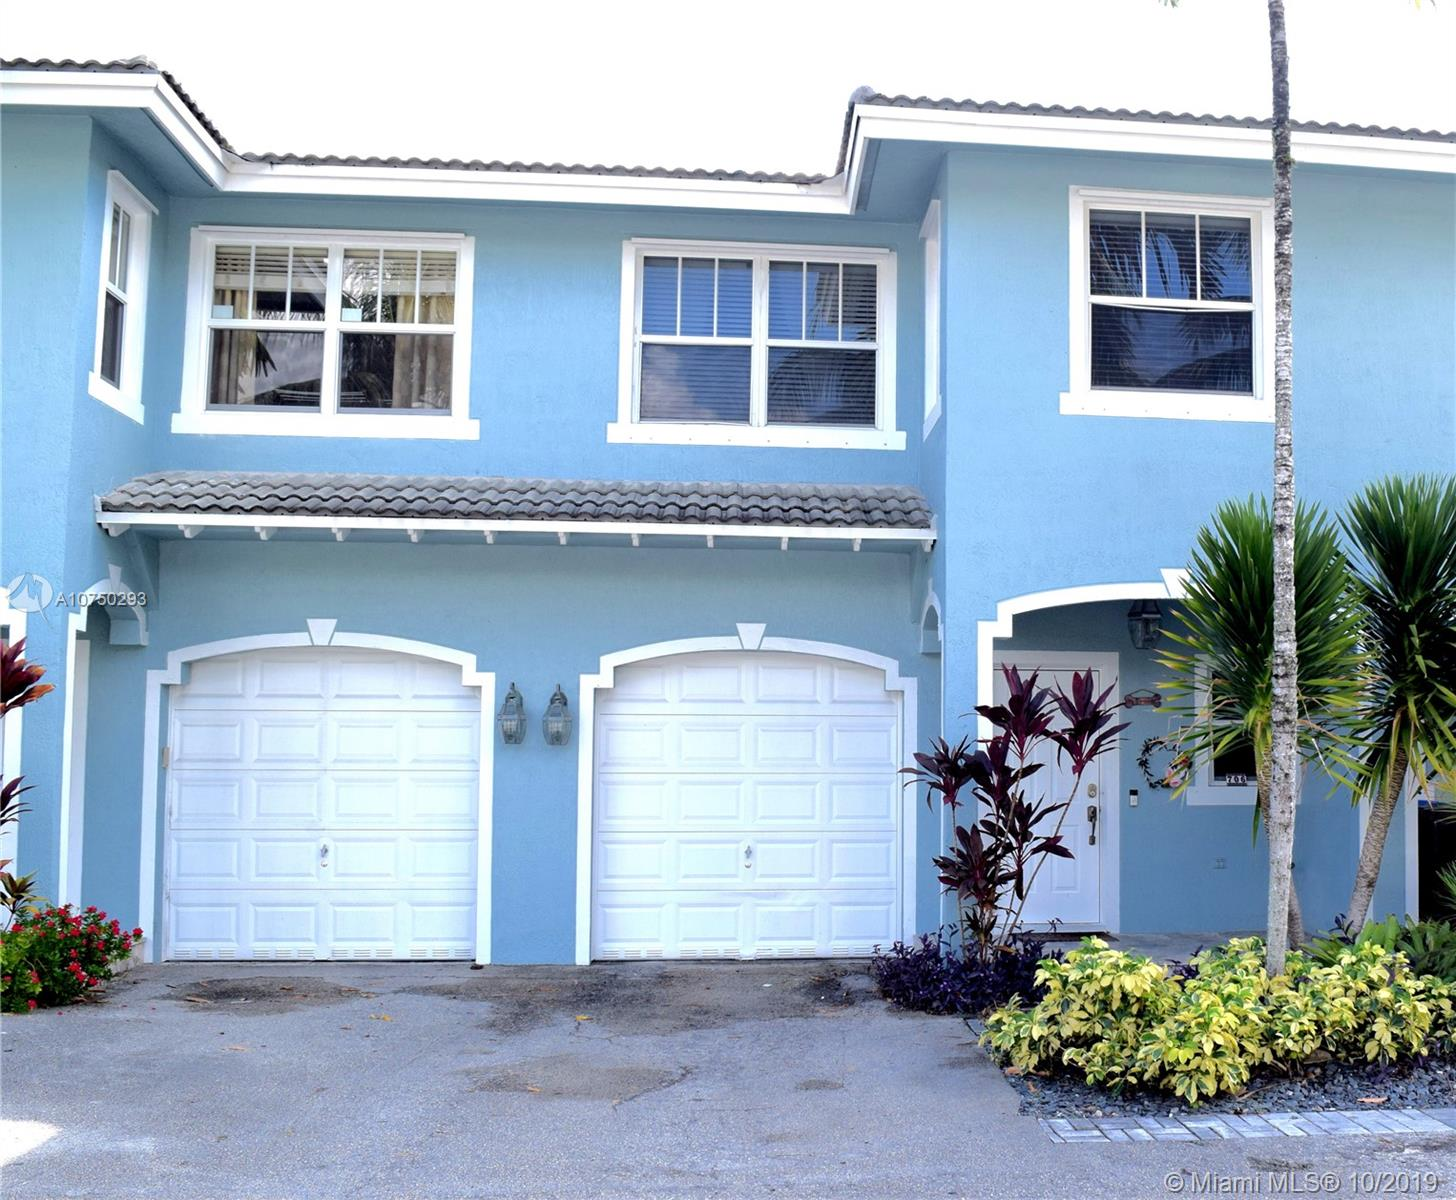 706 SW 4th Ave #706 For Sale A10750293, FL